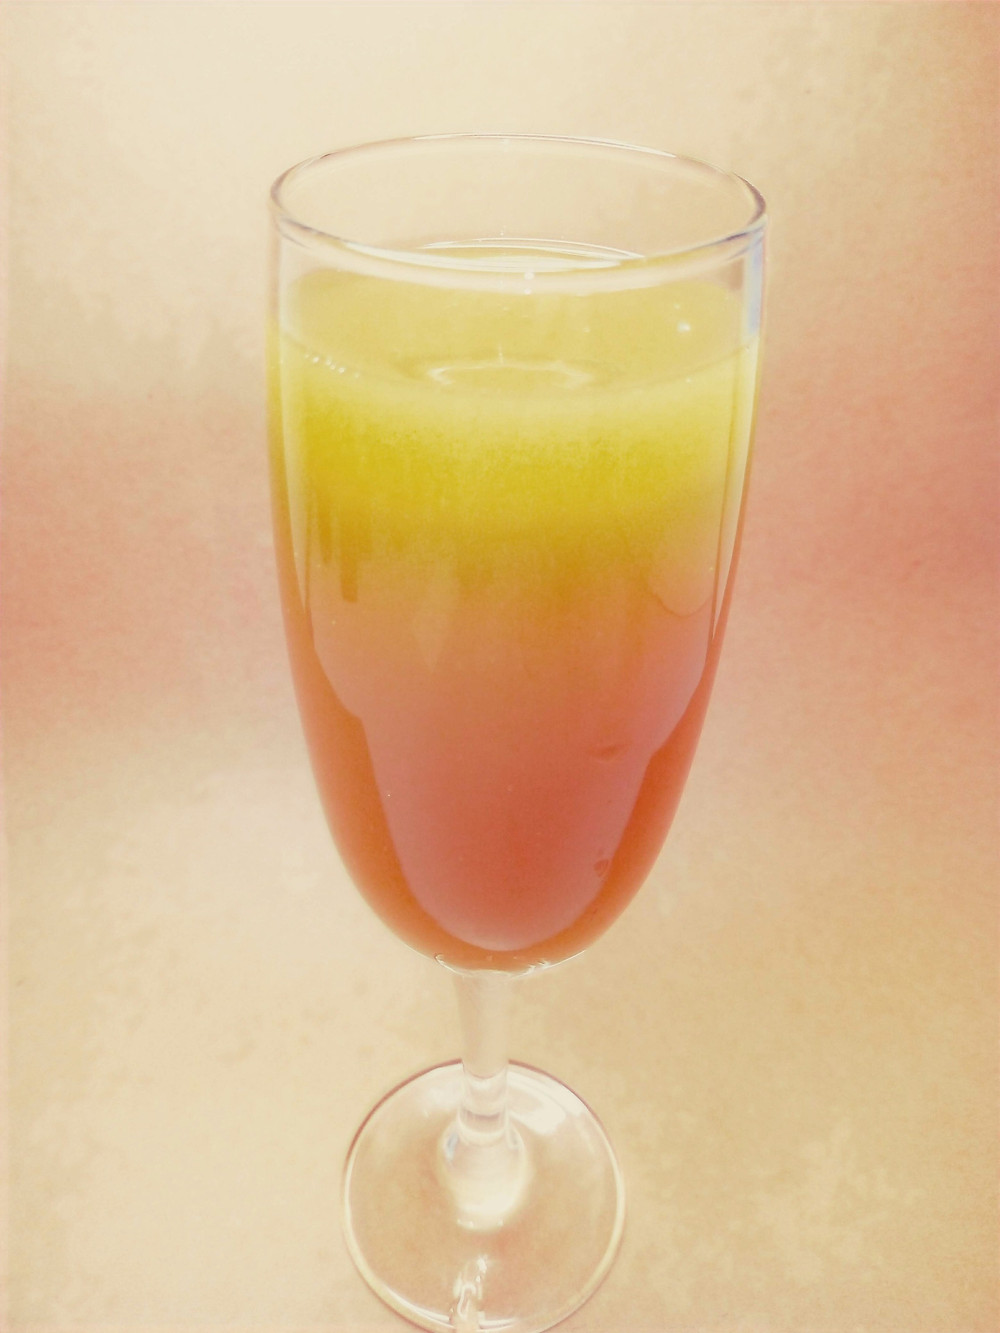 A glass is photographed slightly from above. The orange colour shades from light to dark down the shining curve of the glass.